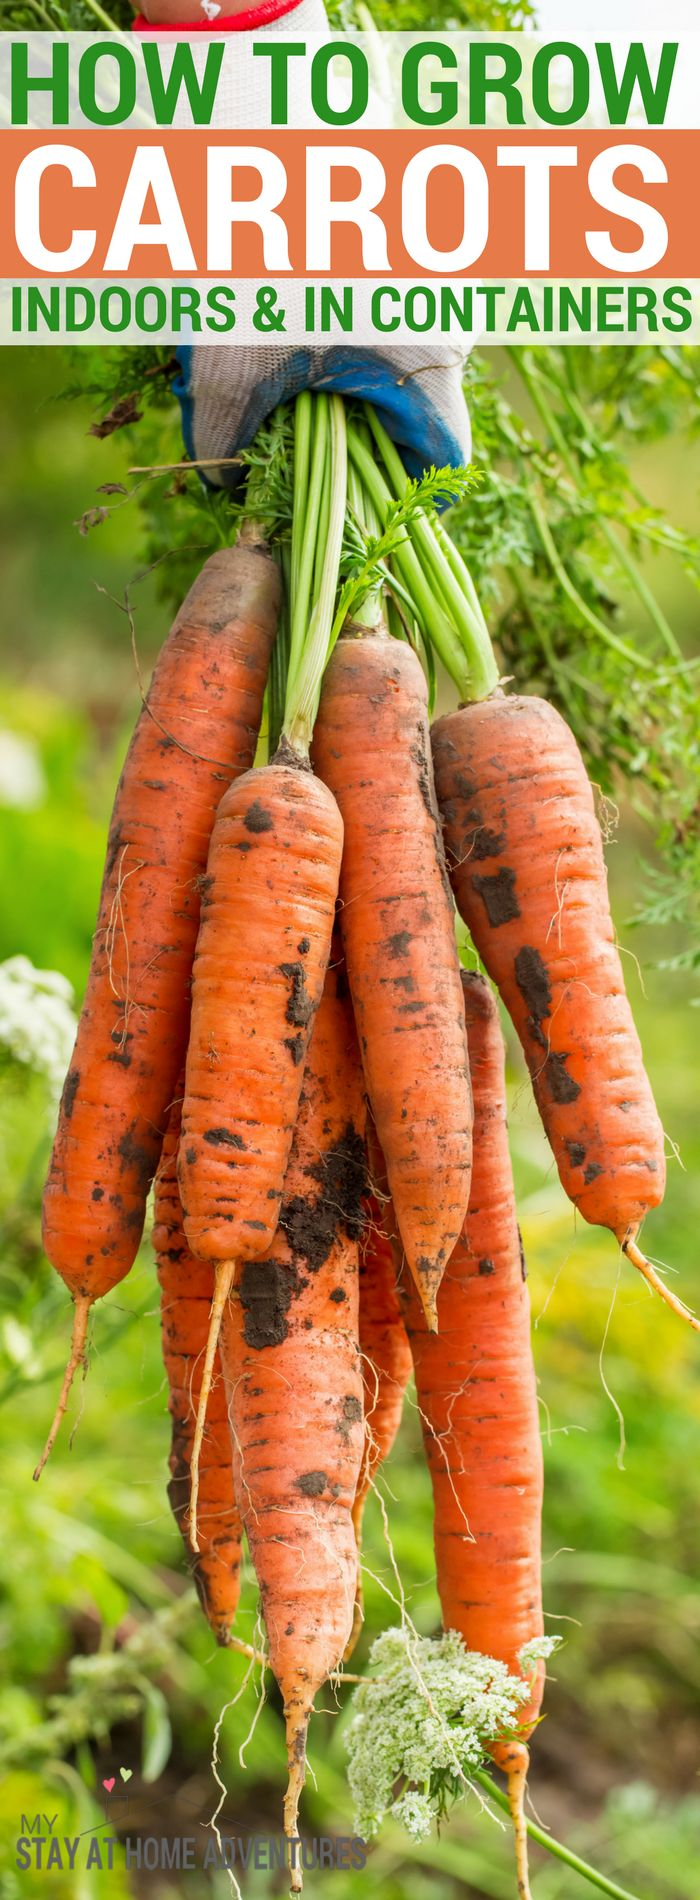 Can you grow carrot indoors? Yes, you can. Learn how it easy it is to grow carrots indoors and the benefits of growing carrots too. Follow these tips and you will be growing carrots in containers in no time! #gardening #Garden #Growsomethinggreen #DIY #Vegetable #carrots